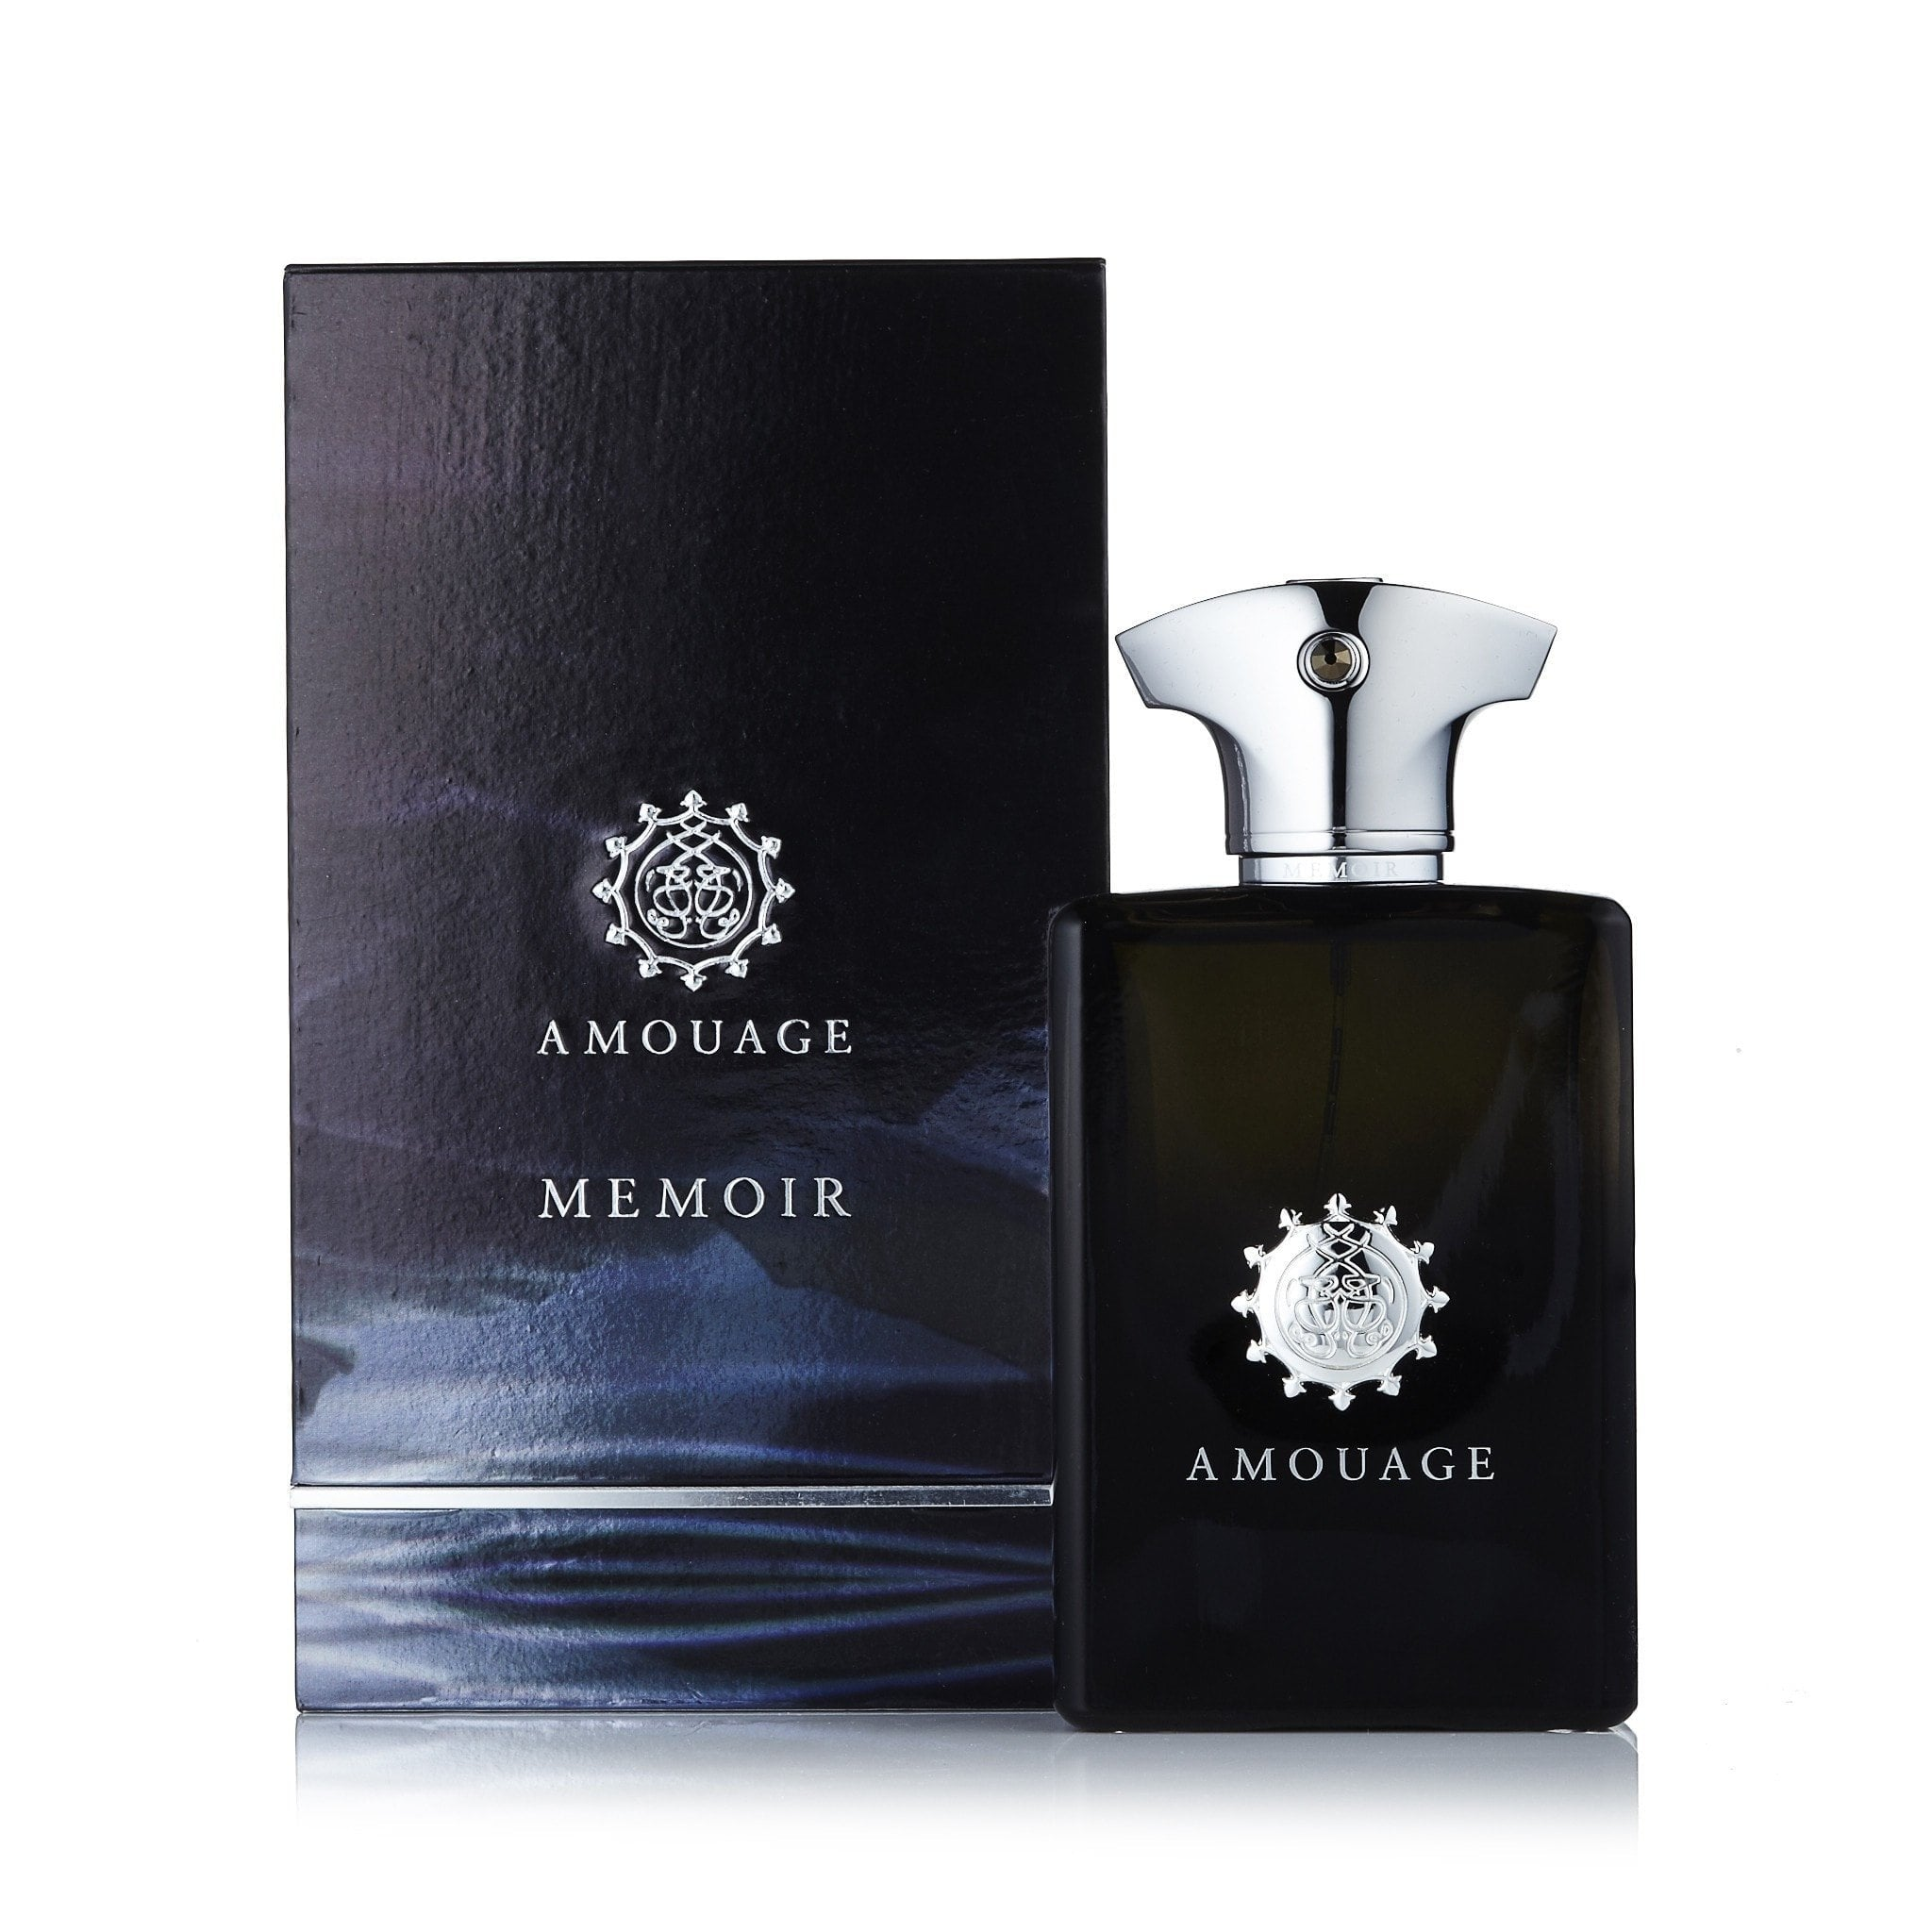 Fragrance Outlet Online Only Specials Tagged Bond No 9